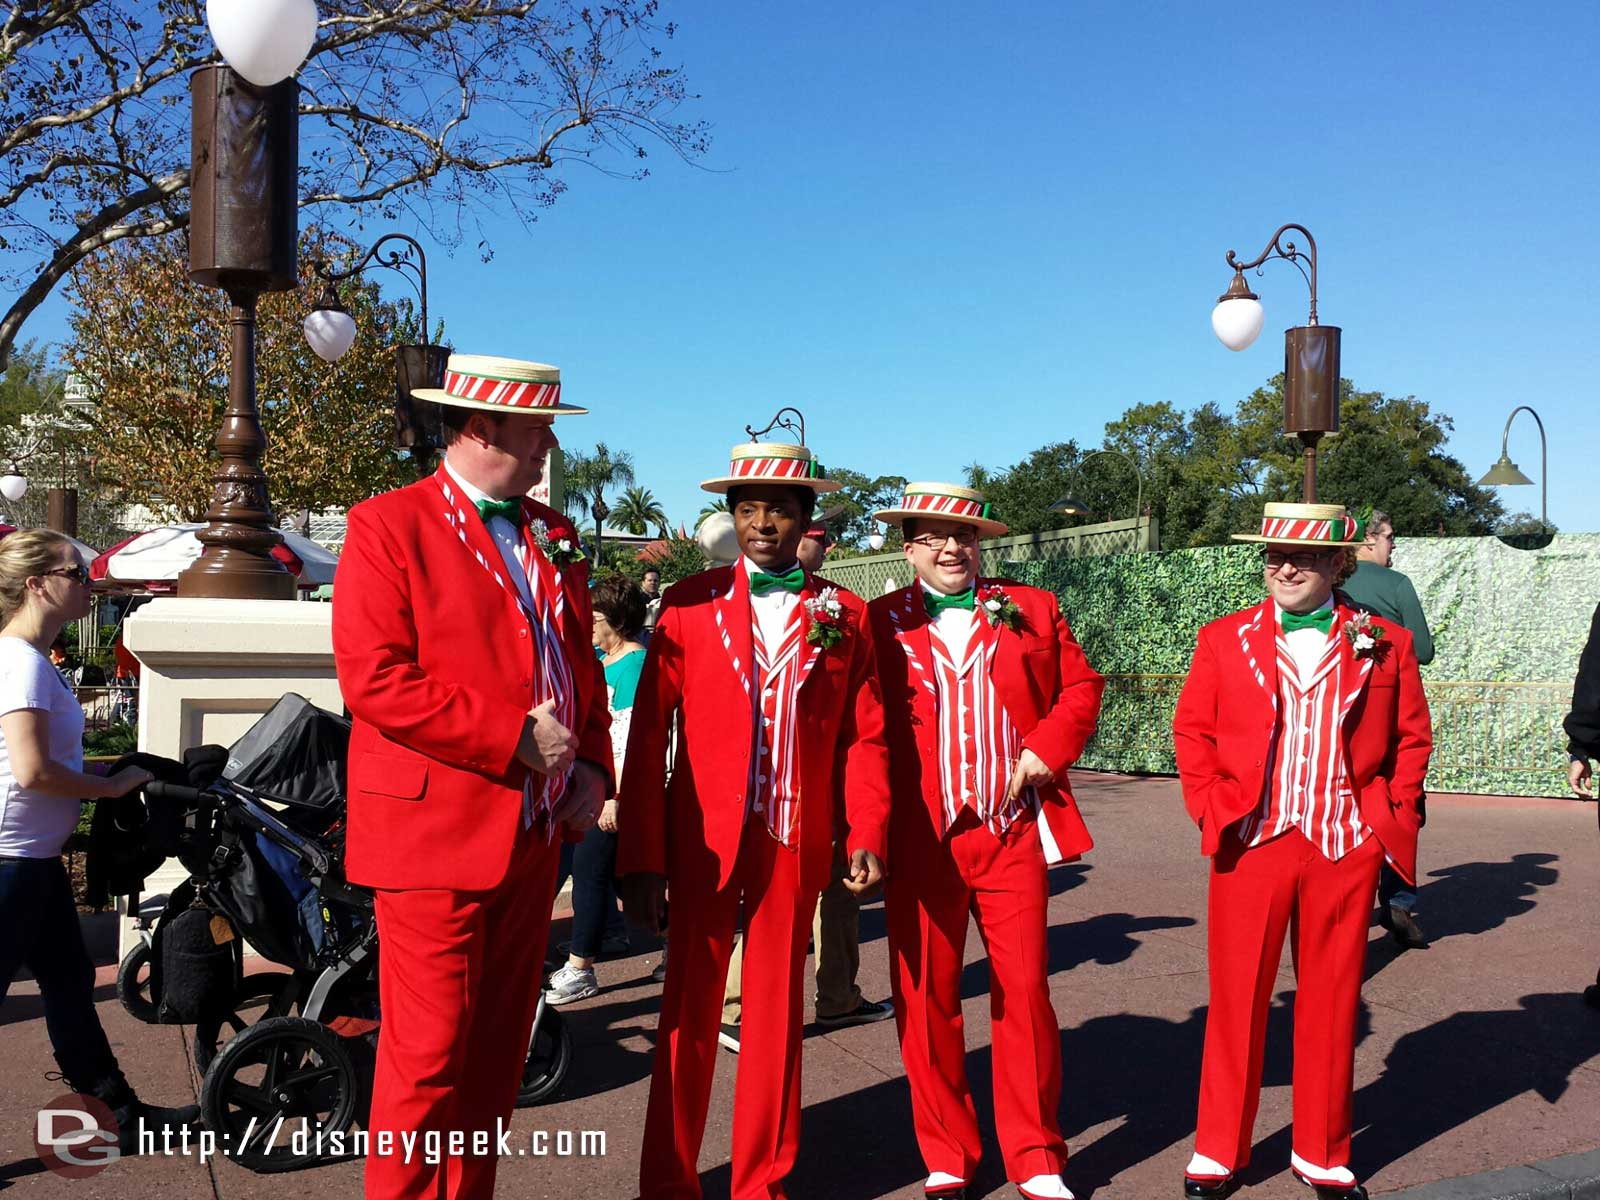 The Dapper Dans on Main Street USA #WDW